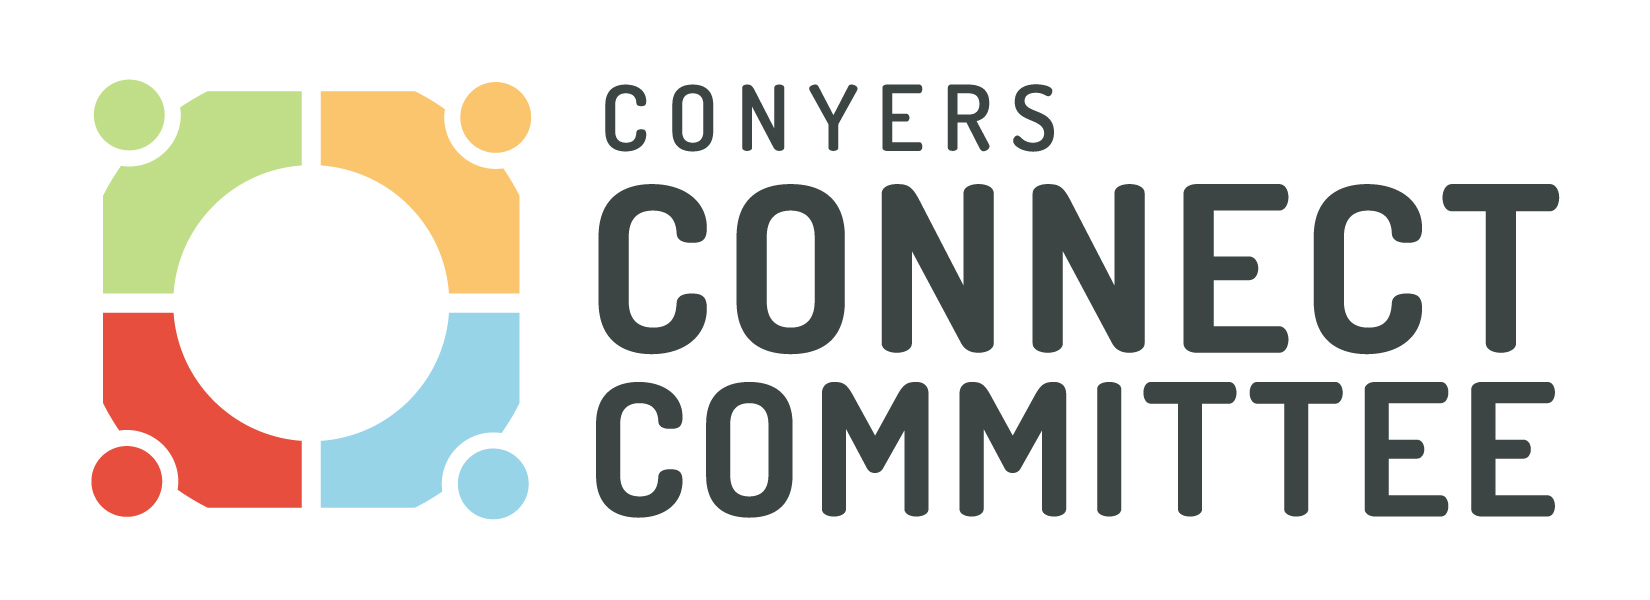 Conyers.Connect.Emp.Committee-logo-horizontal